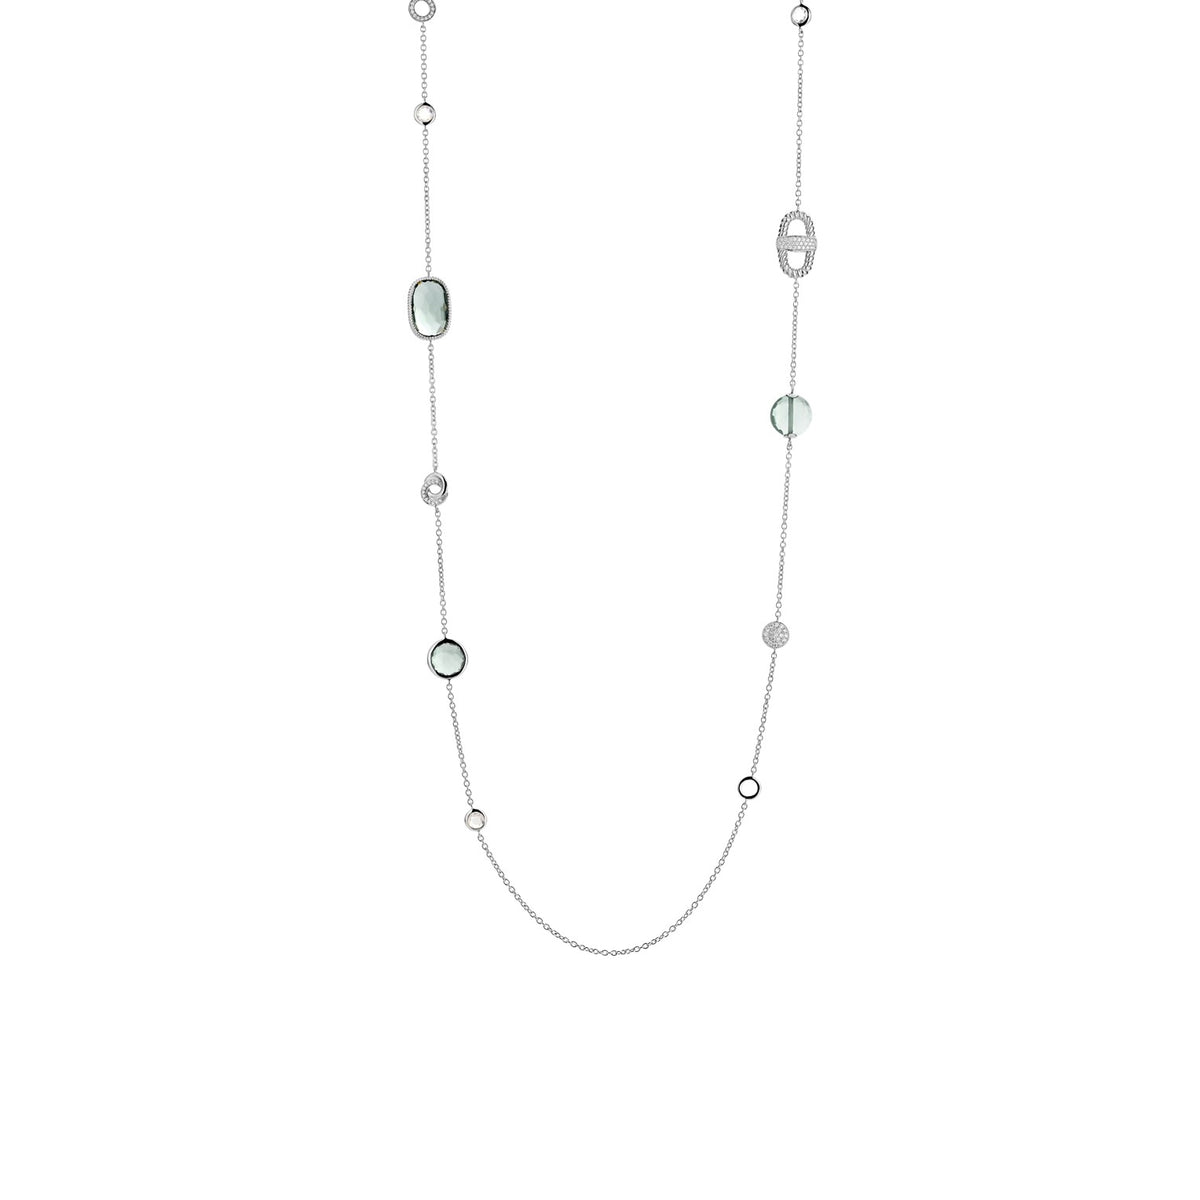 TI SENTO Sterling Silver Station Necklace with Cubic Zirconia and Green Stones